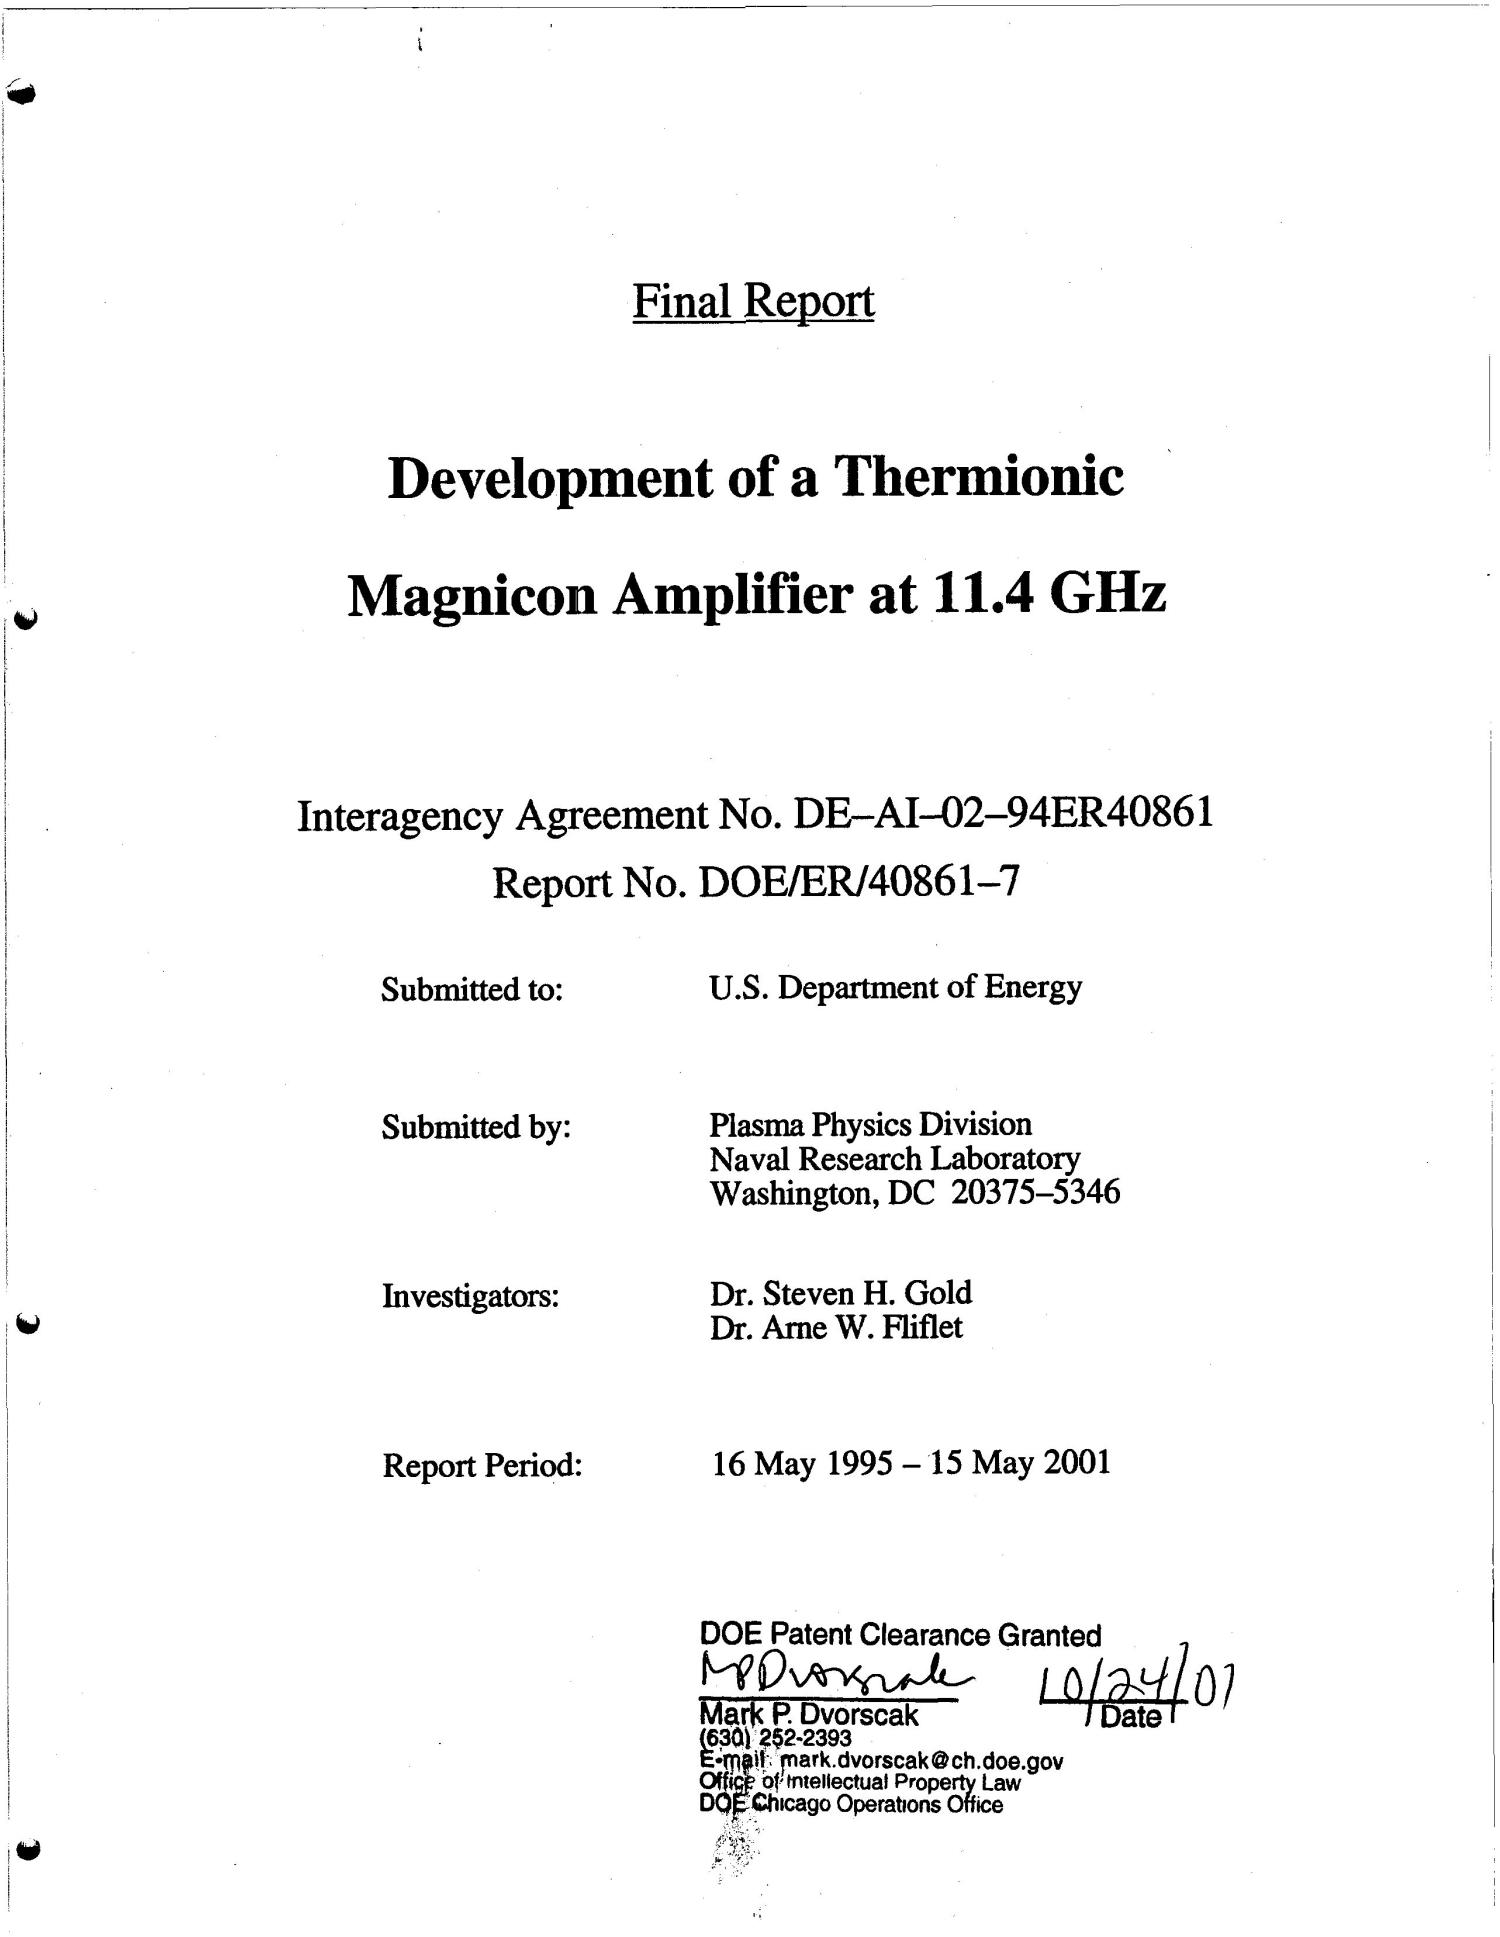 Development of a thermionic magnicon amplifier at 11.4 GHz. Final report for period May 16, 1995 - May 15, 2001                                                                                                      [Sequence #]: 1 of 68